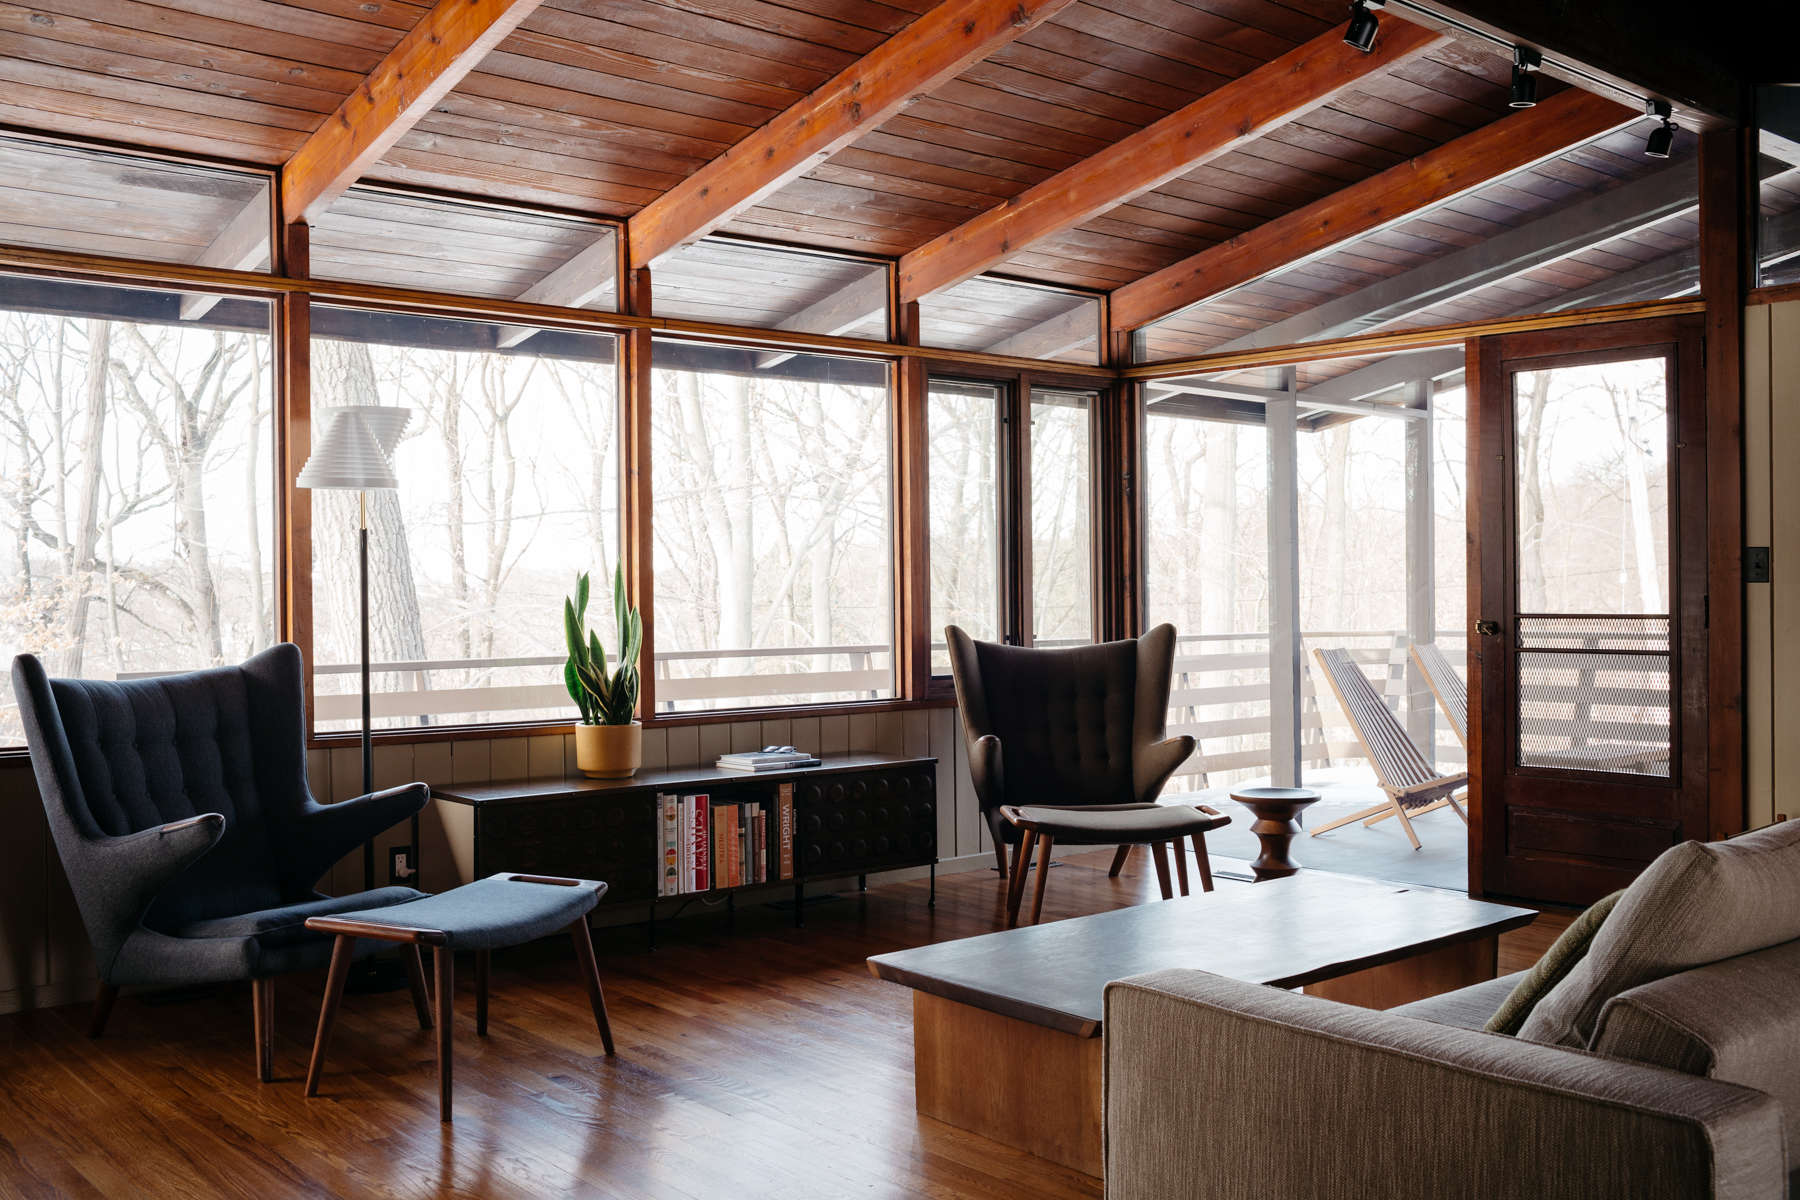 The living room at the wood house carla and niall maher s midcentury